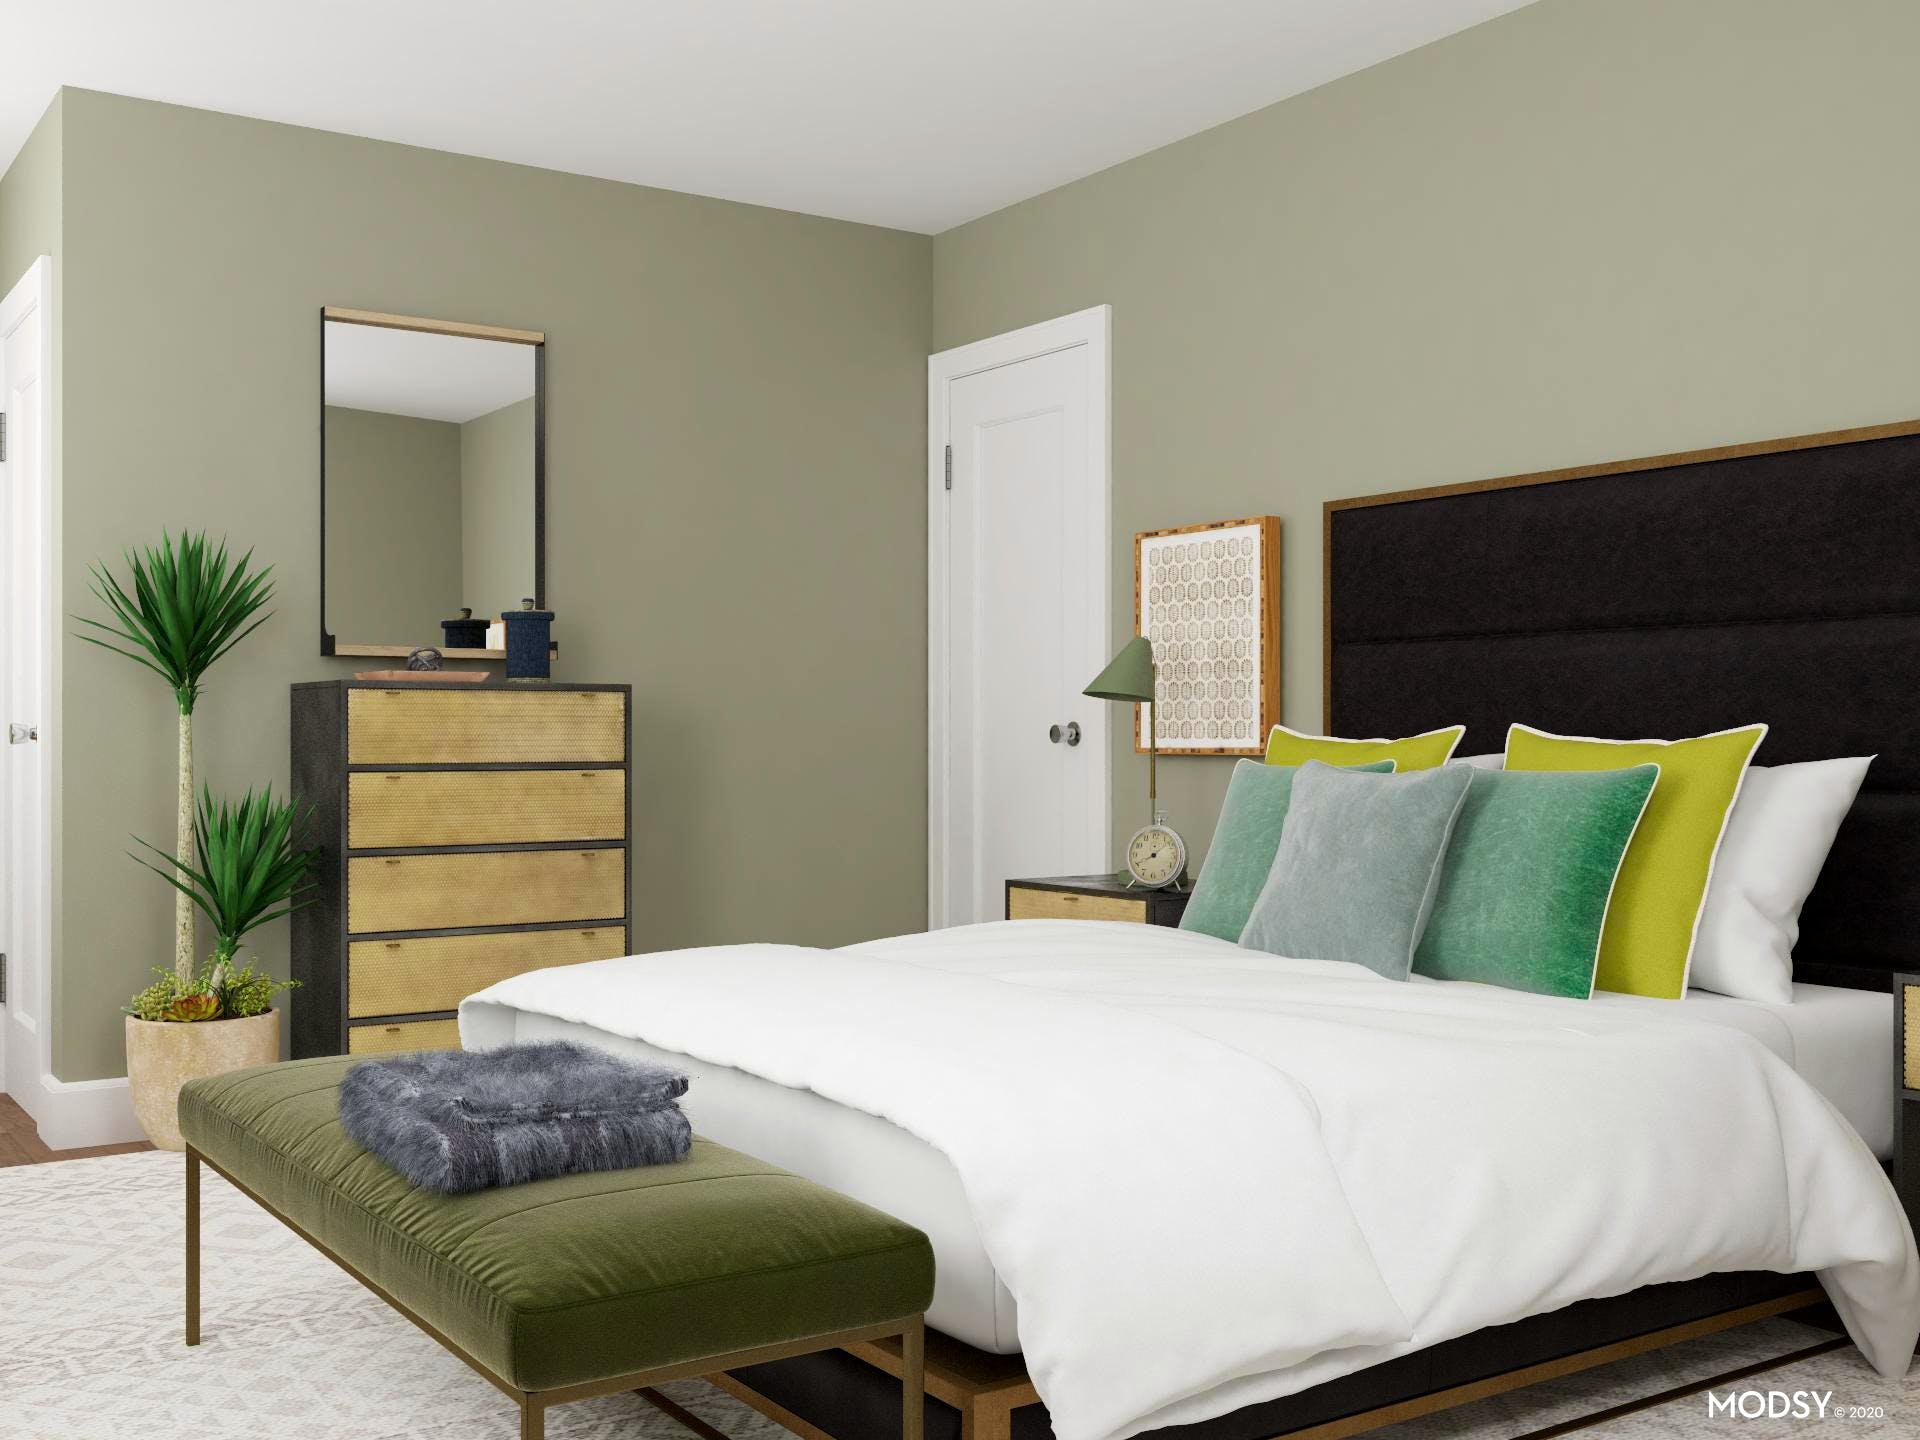 Green Is The New Neutral: Bedroom Design